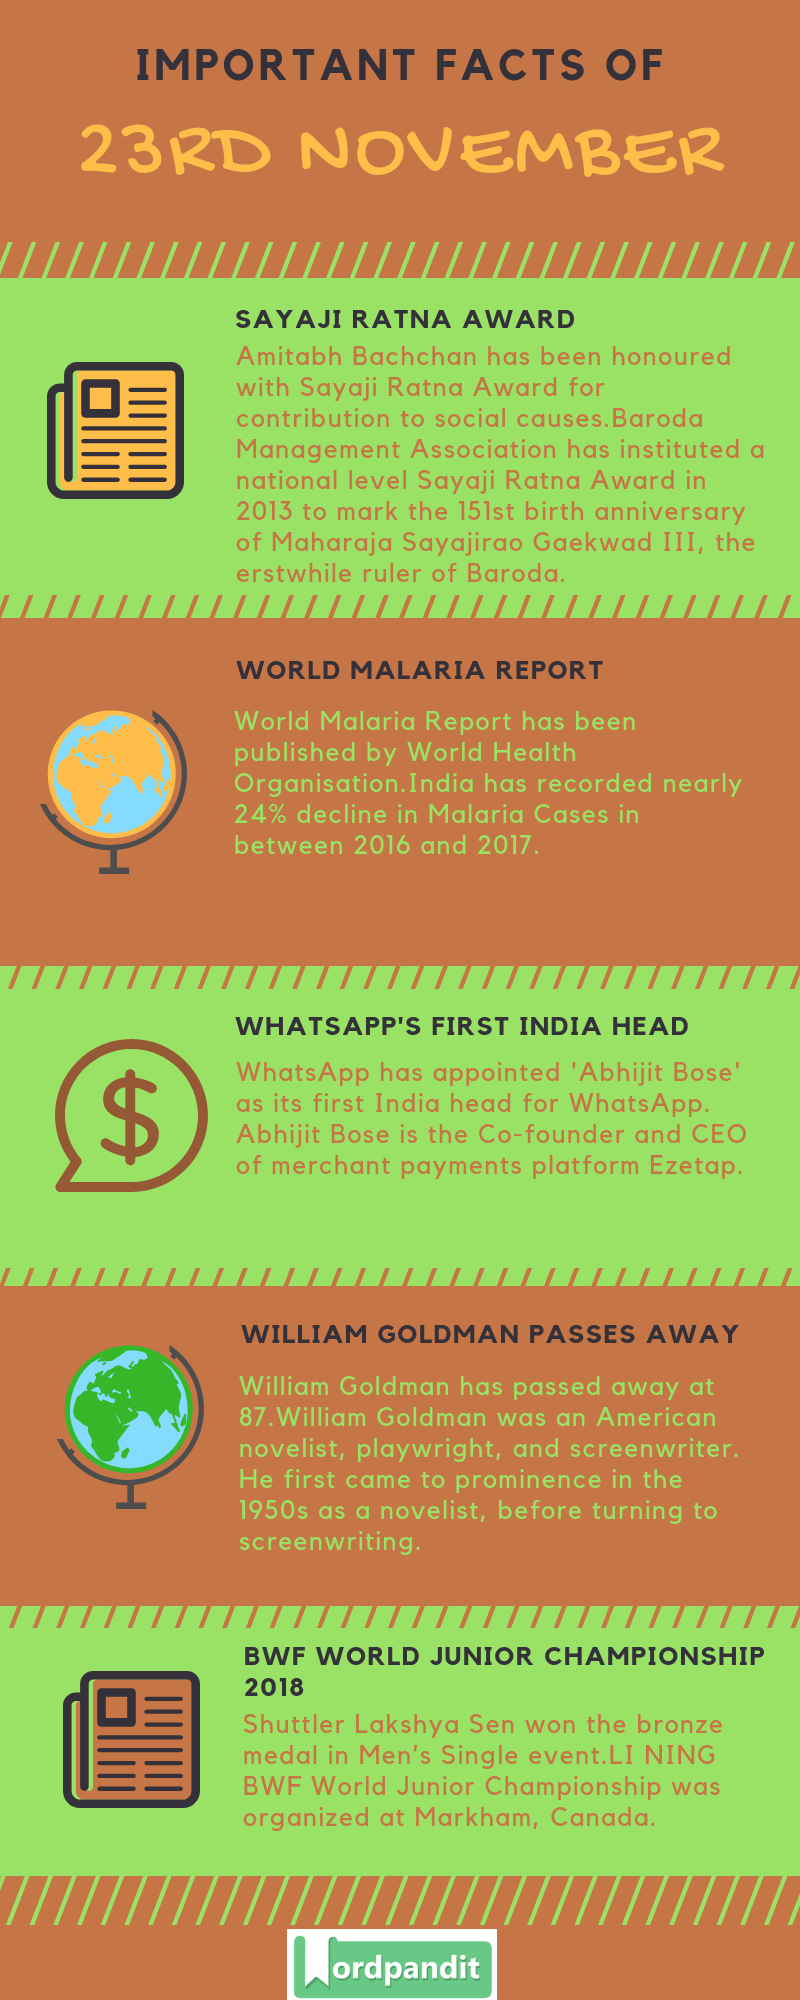 Daily Current Affairs 23 November 2018 Current Affairs Quiz 23 November 2018 Current Affairs Infographic